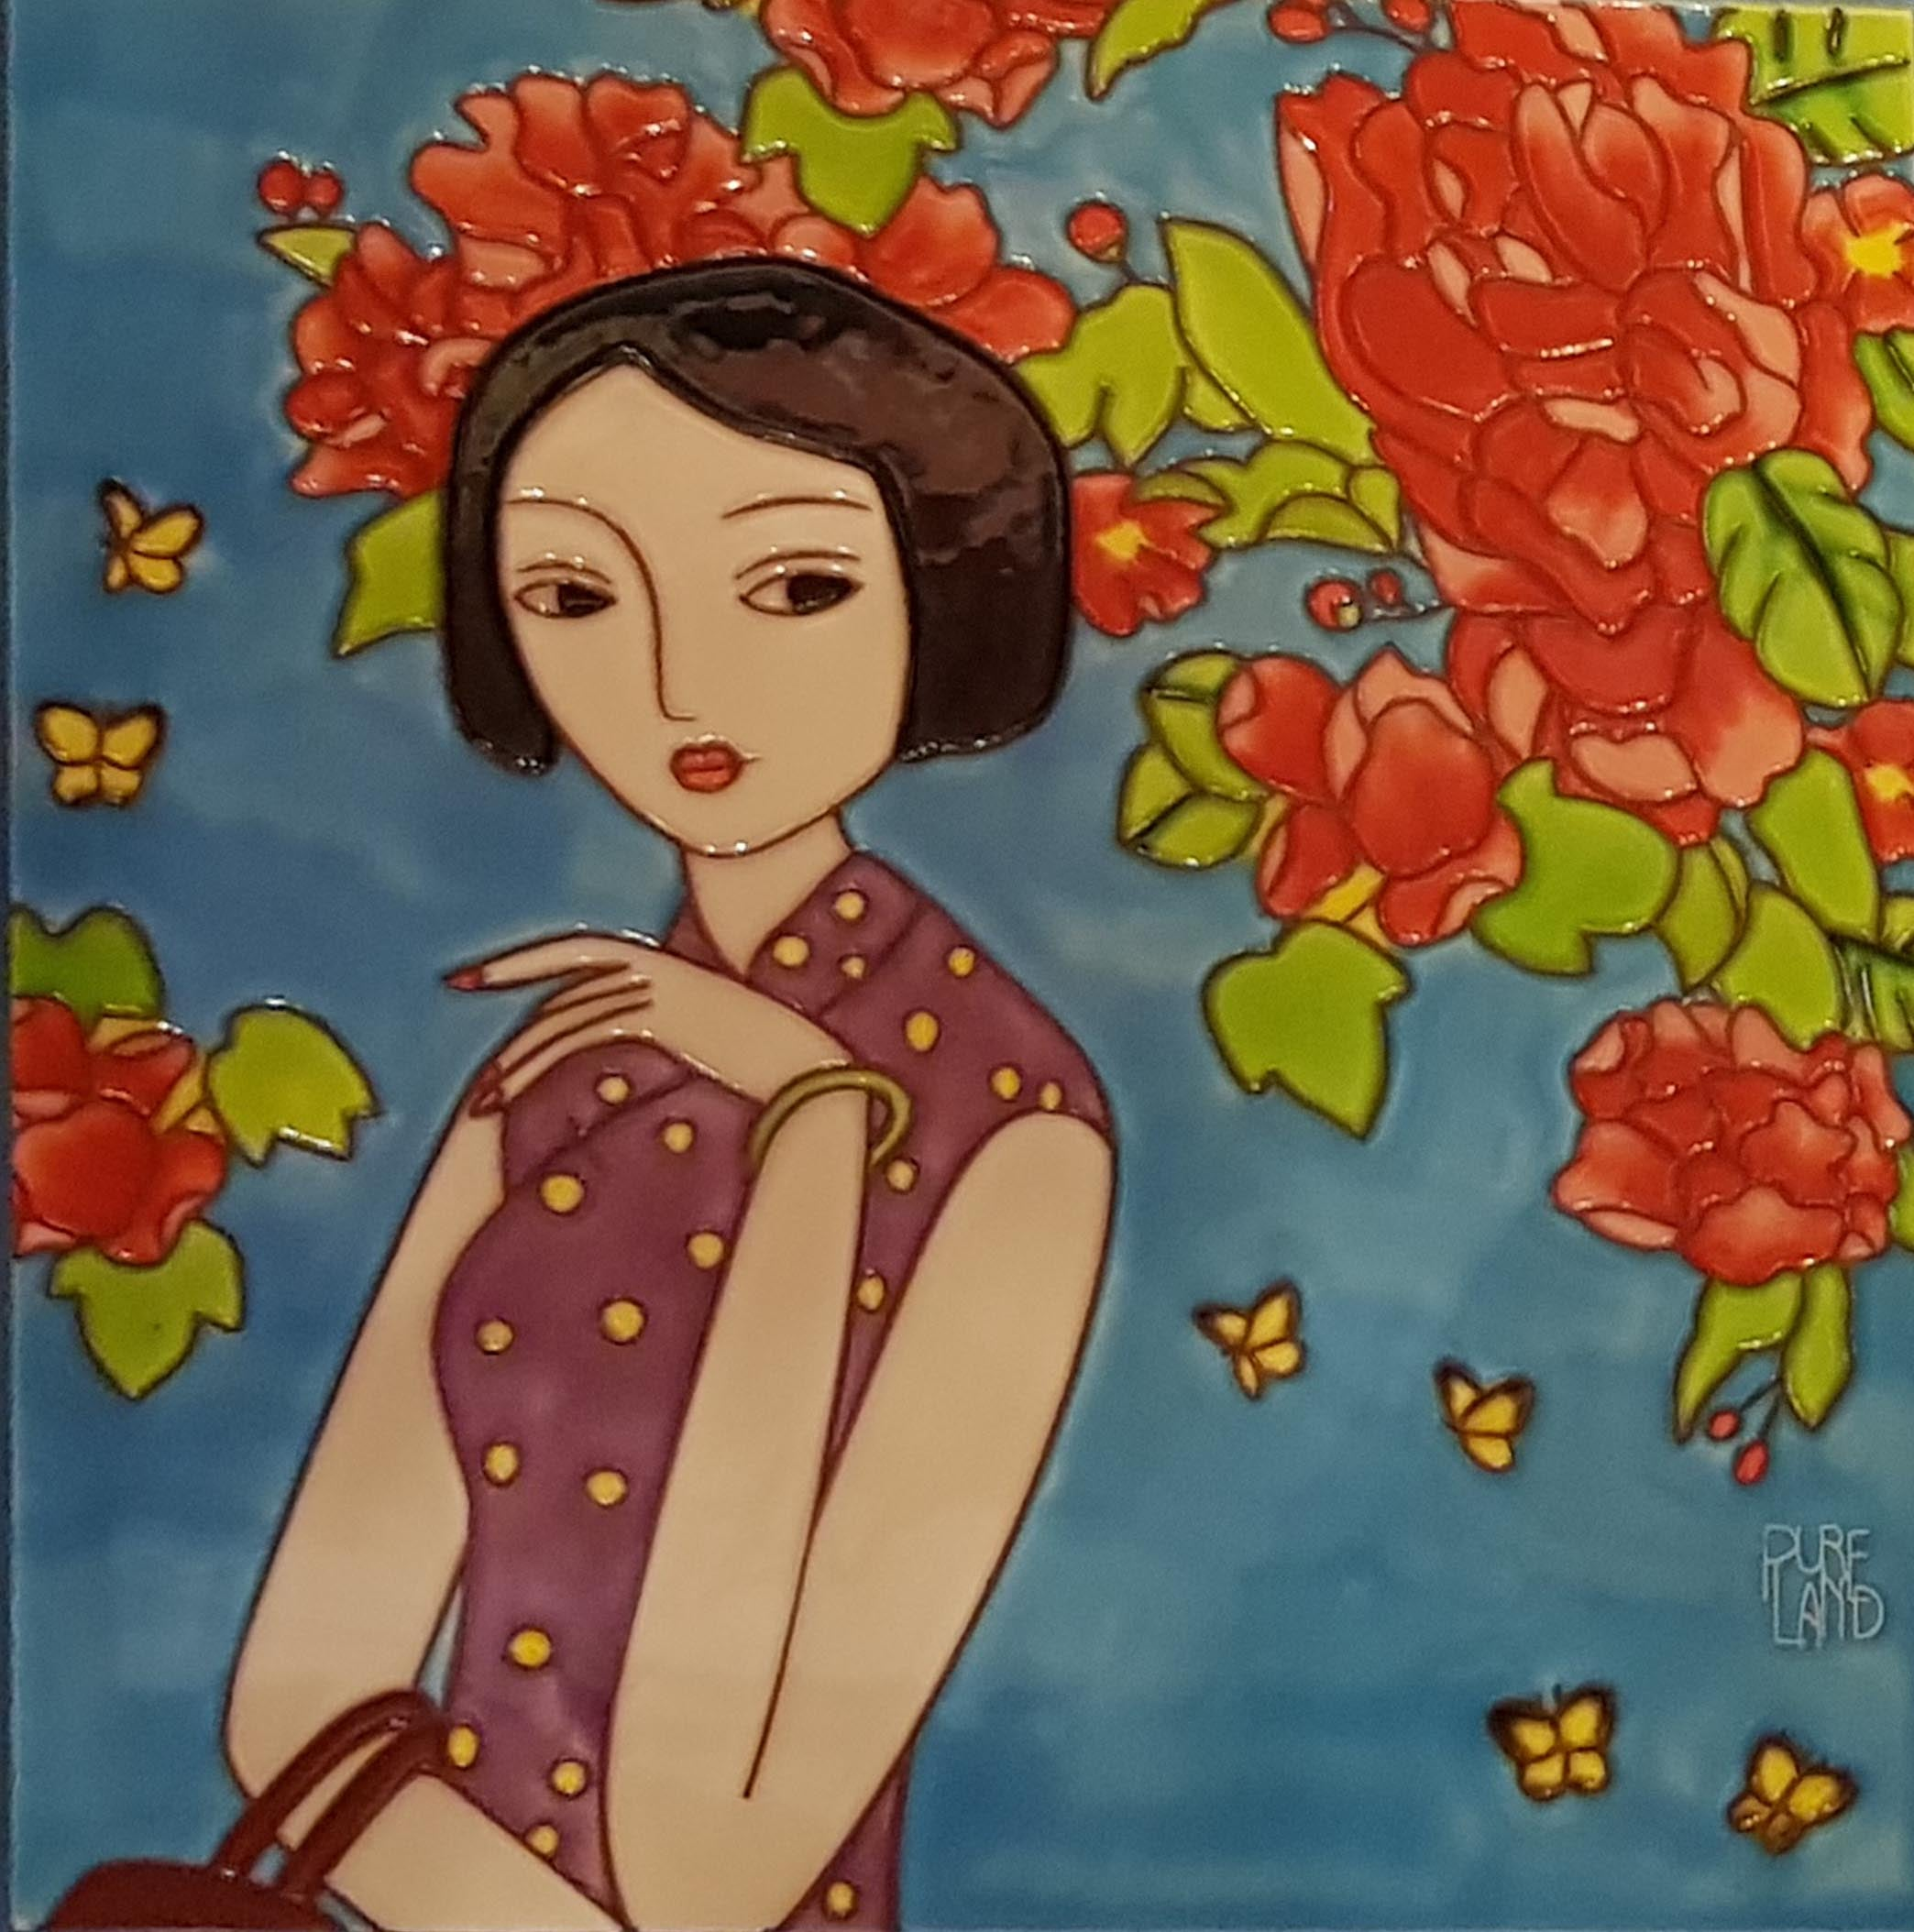 3849 Qipao and Butterflies (Collector's Edition) 30cm x 30cm Ceramic Tile